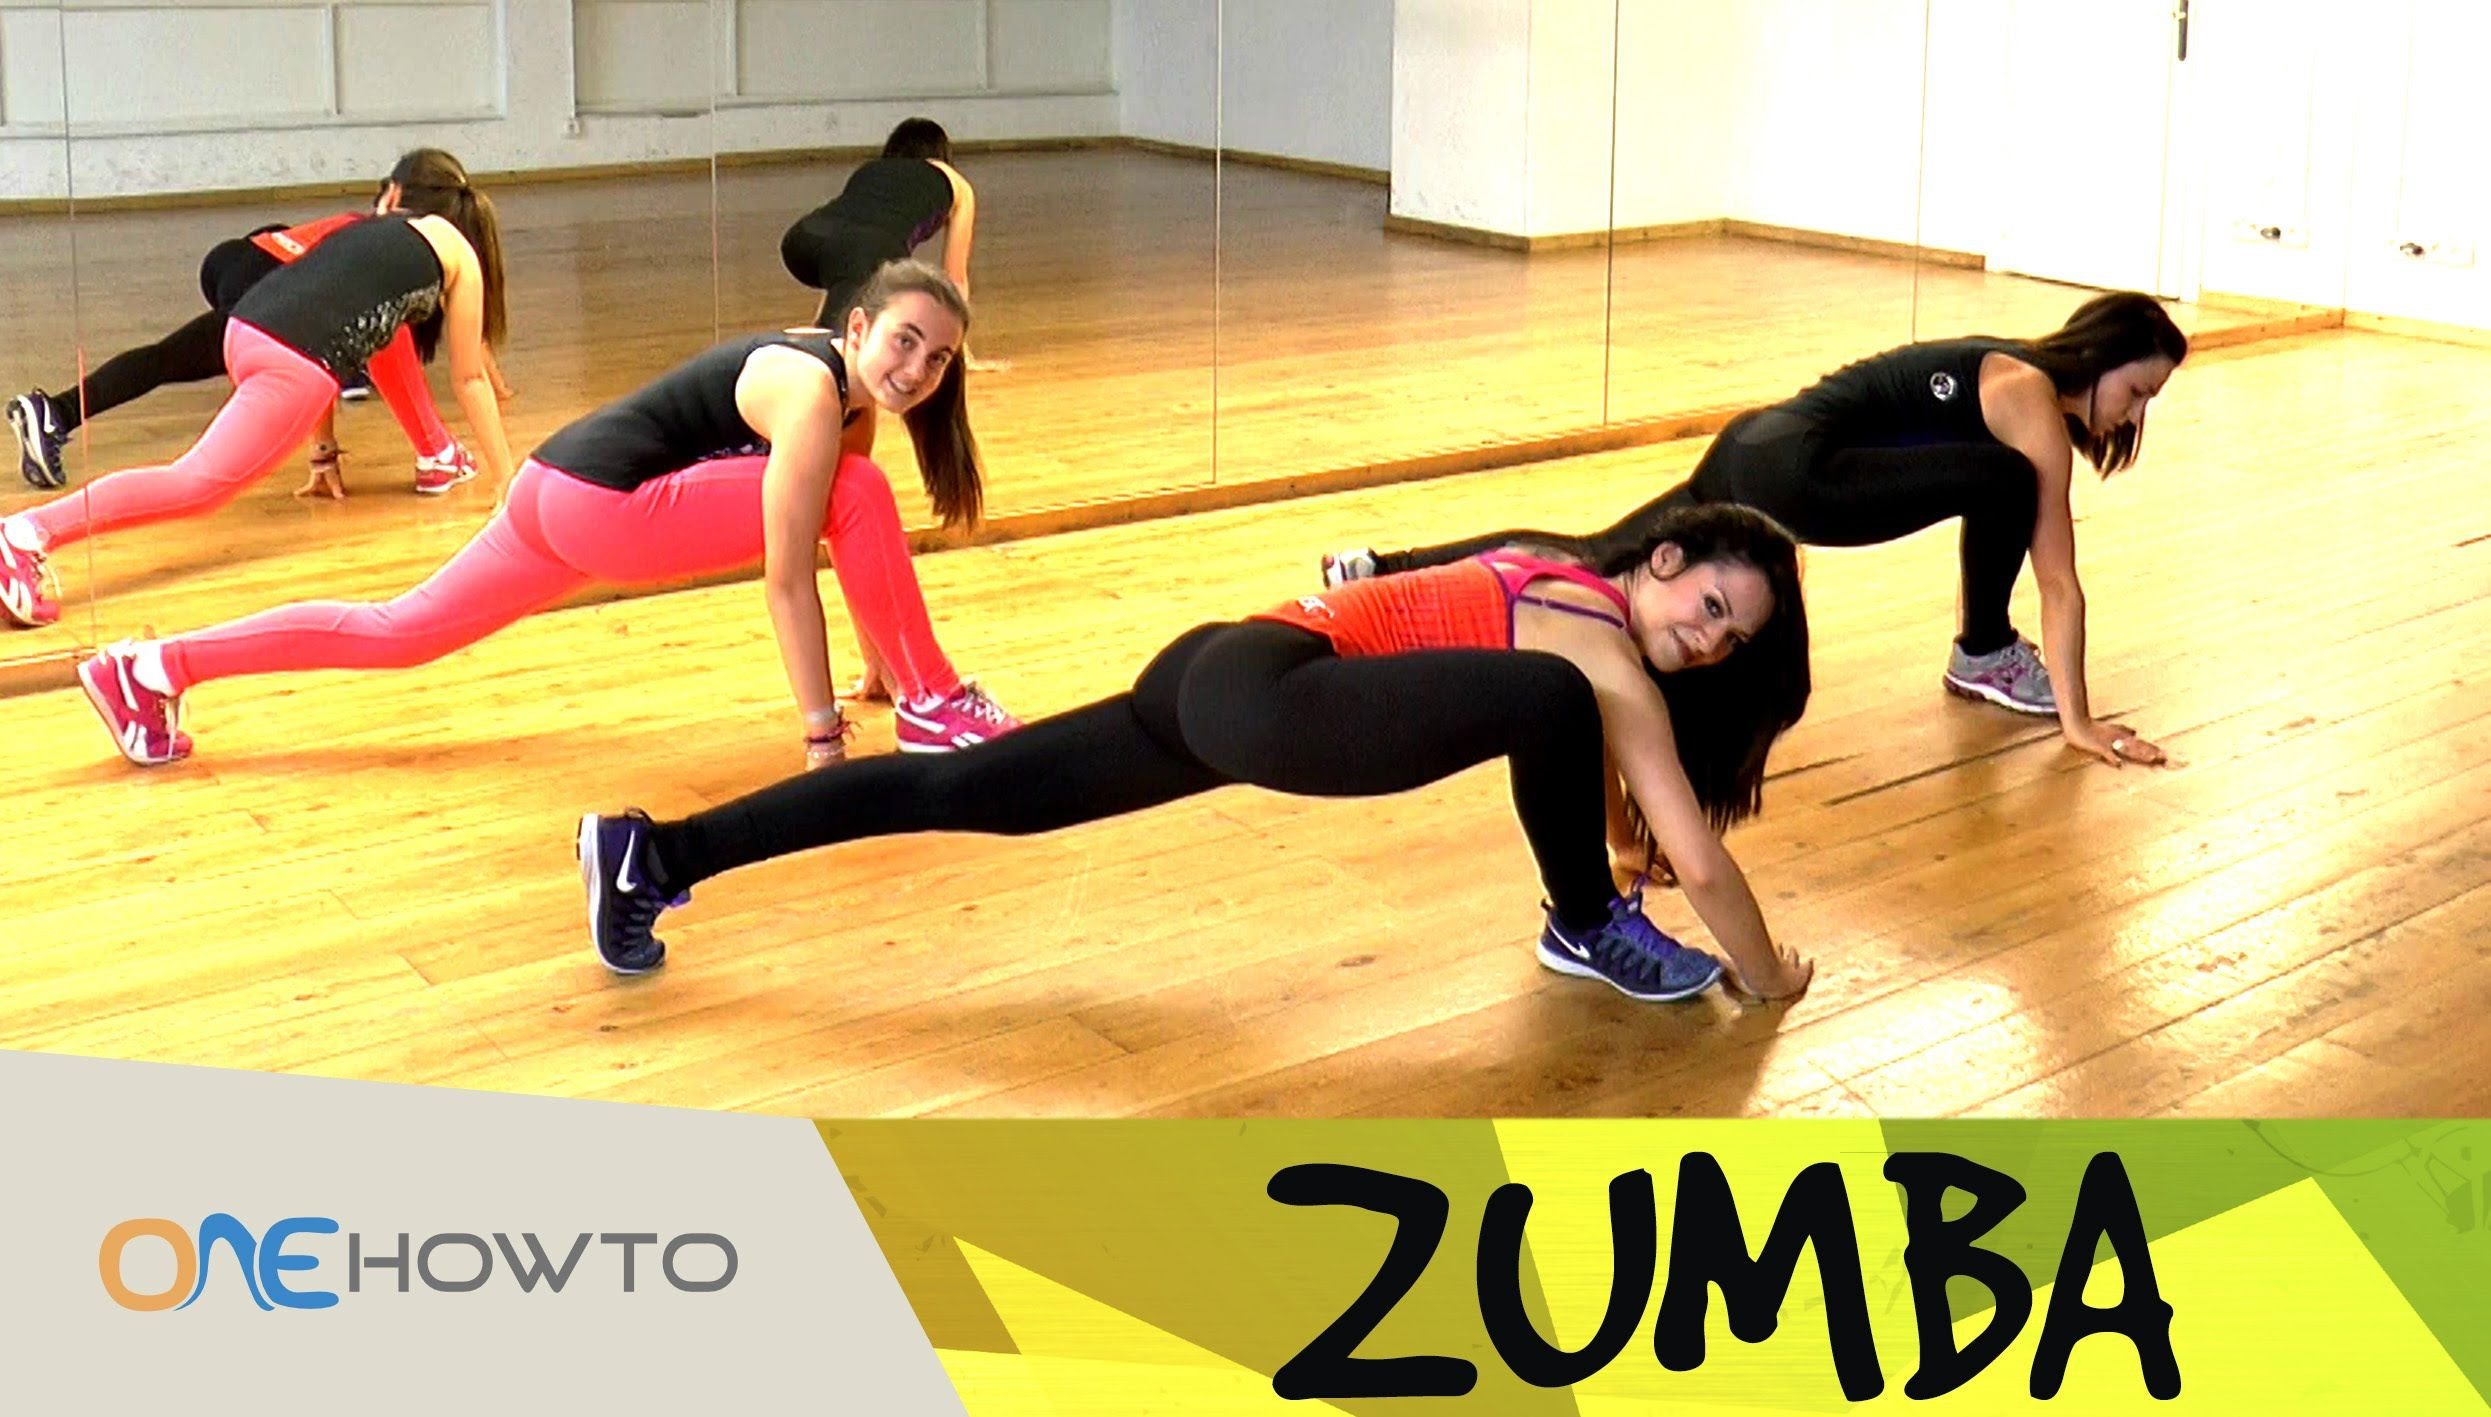 Today on oneHOWTO zumba channel we're going to show you a ...